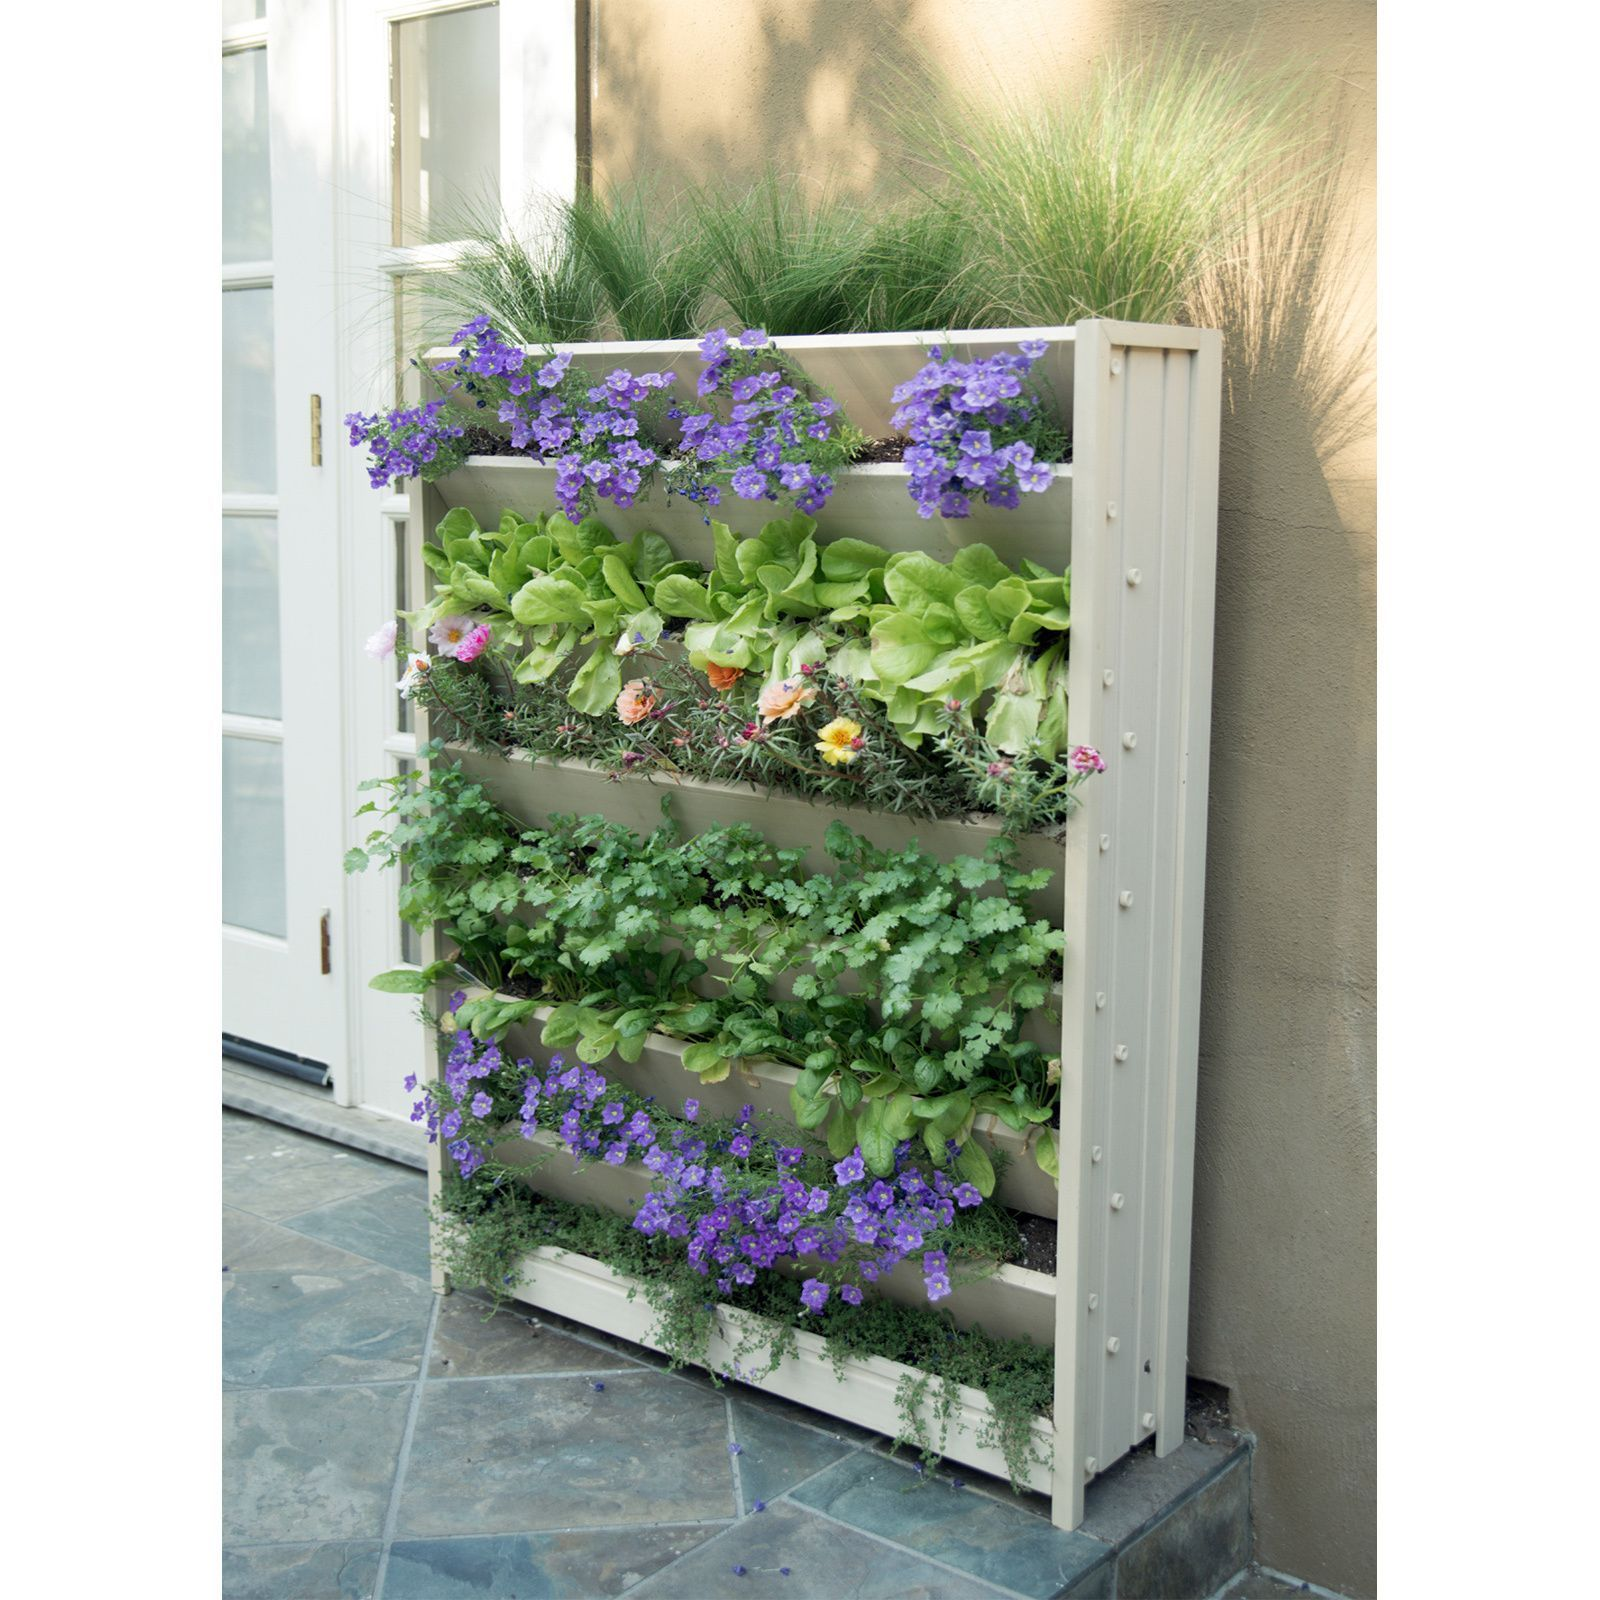 tier planters lettuces great for and vertical garden dp mr with grow amazon strawberries com vegetables planter medium stacky hydroponic